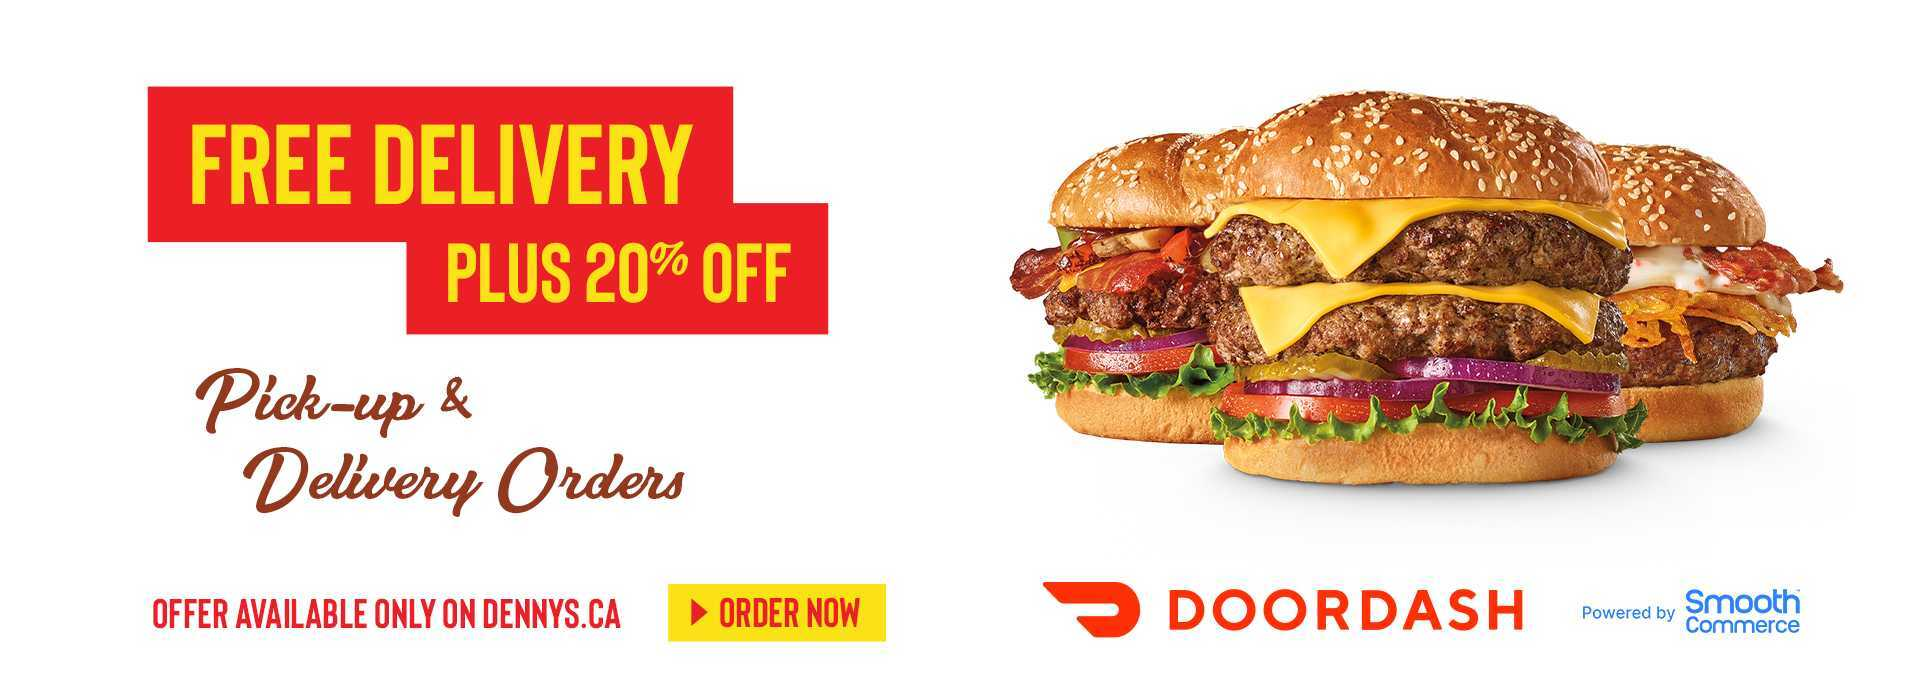 FREE Delivery PLUS 20% Off. Win $50 Towards Your Next Online Order.